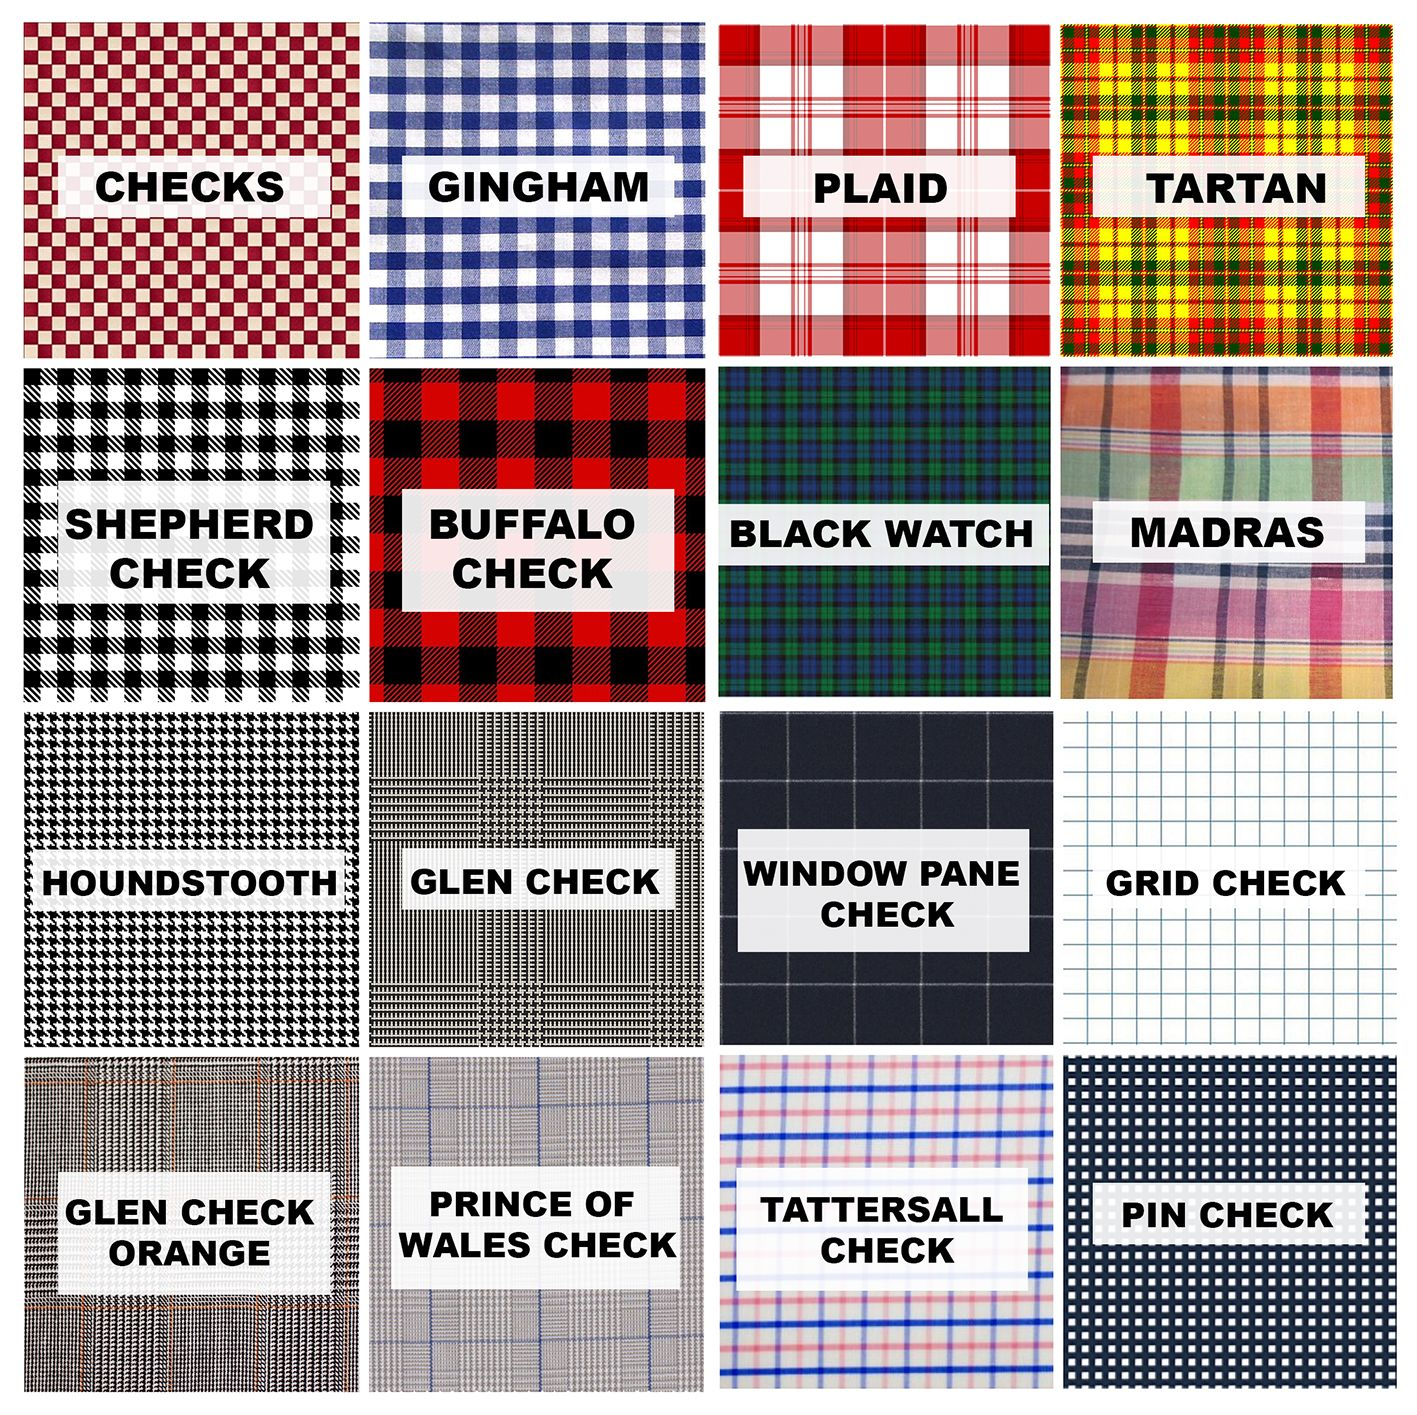 e717074ede9c A Guide To: Plaid, Checks, Tartan and more | men style in 2019 ...